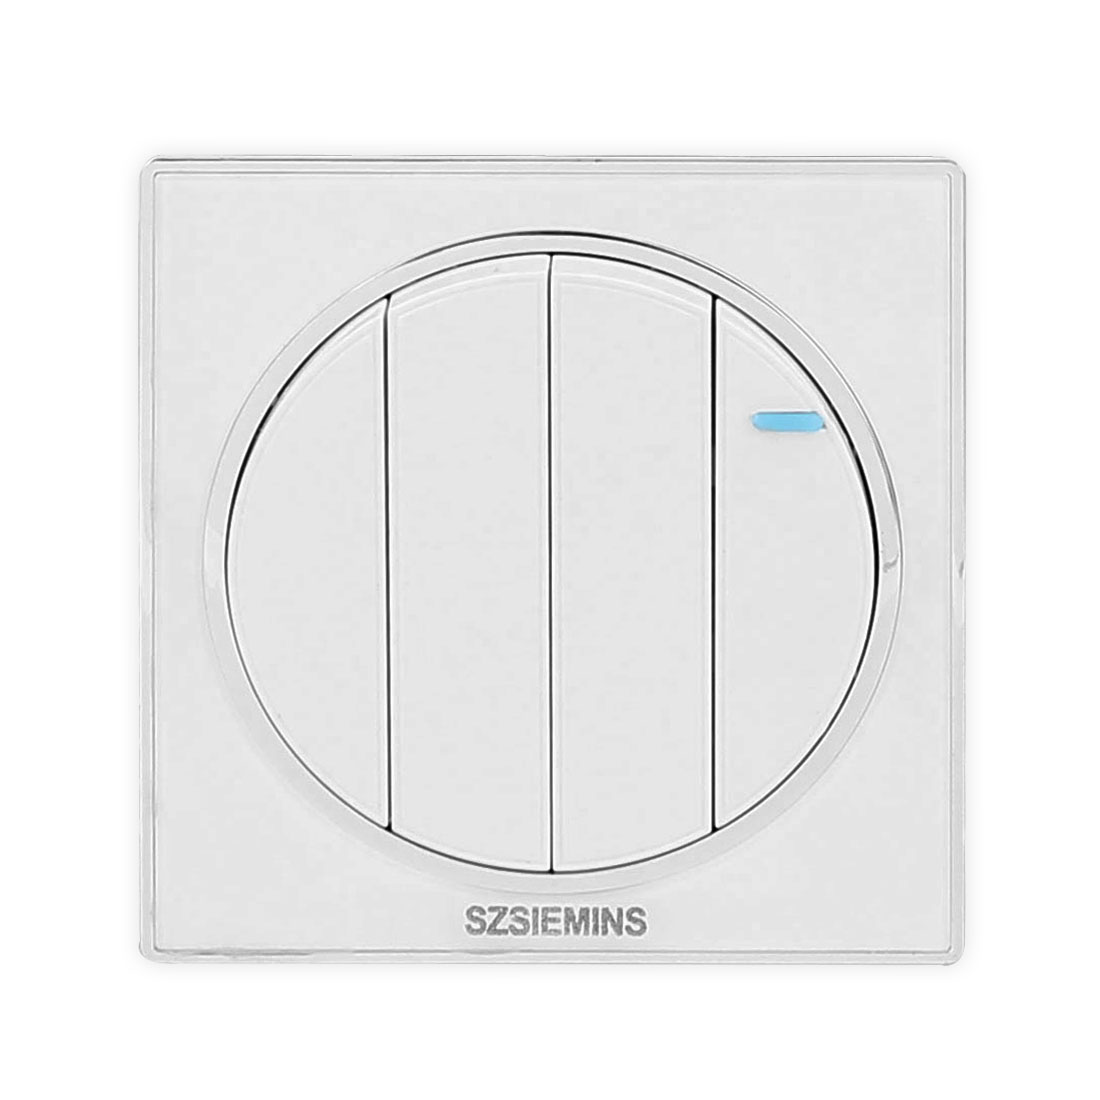 AC 250V 16A 4 Gang 2 Way On/Off Circular Design Press Button PMMA Wall Switch Light Control White